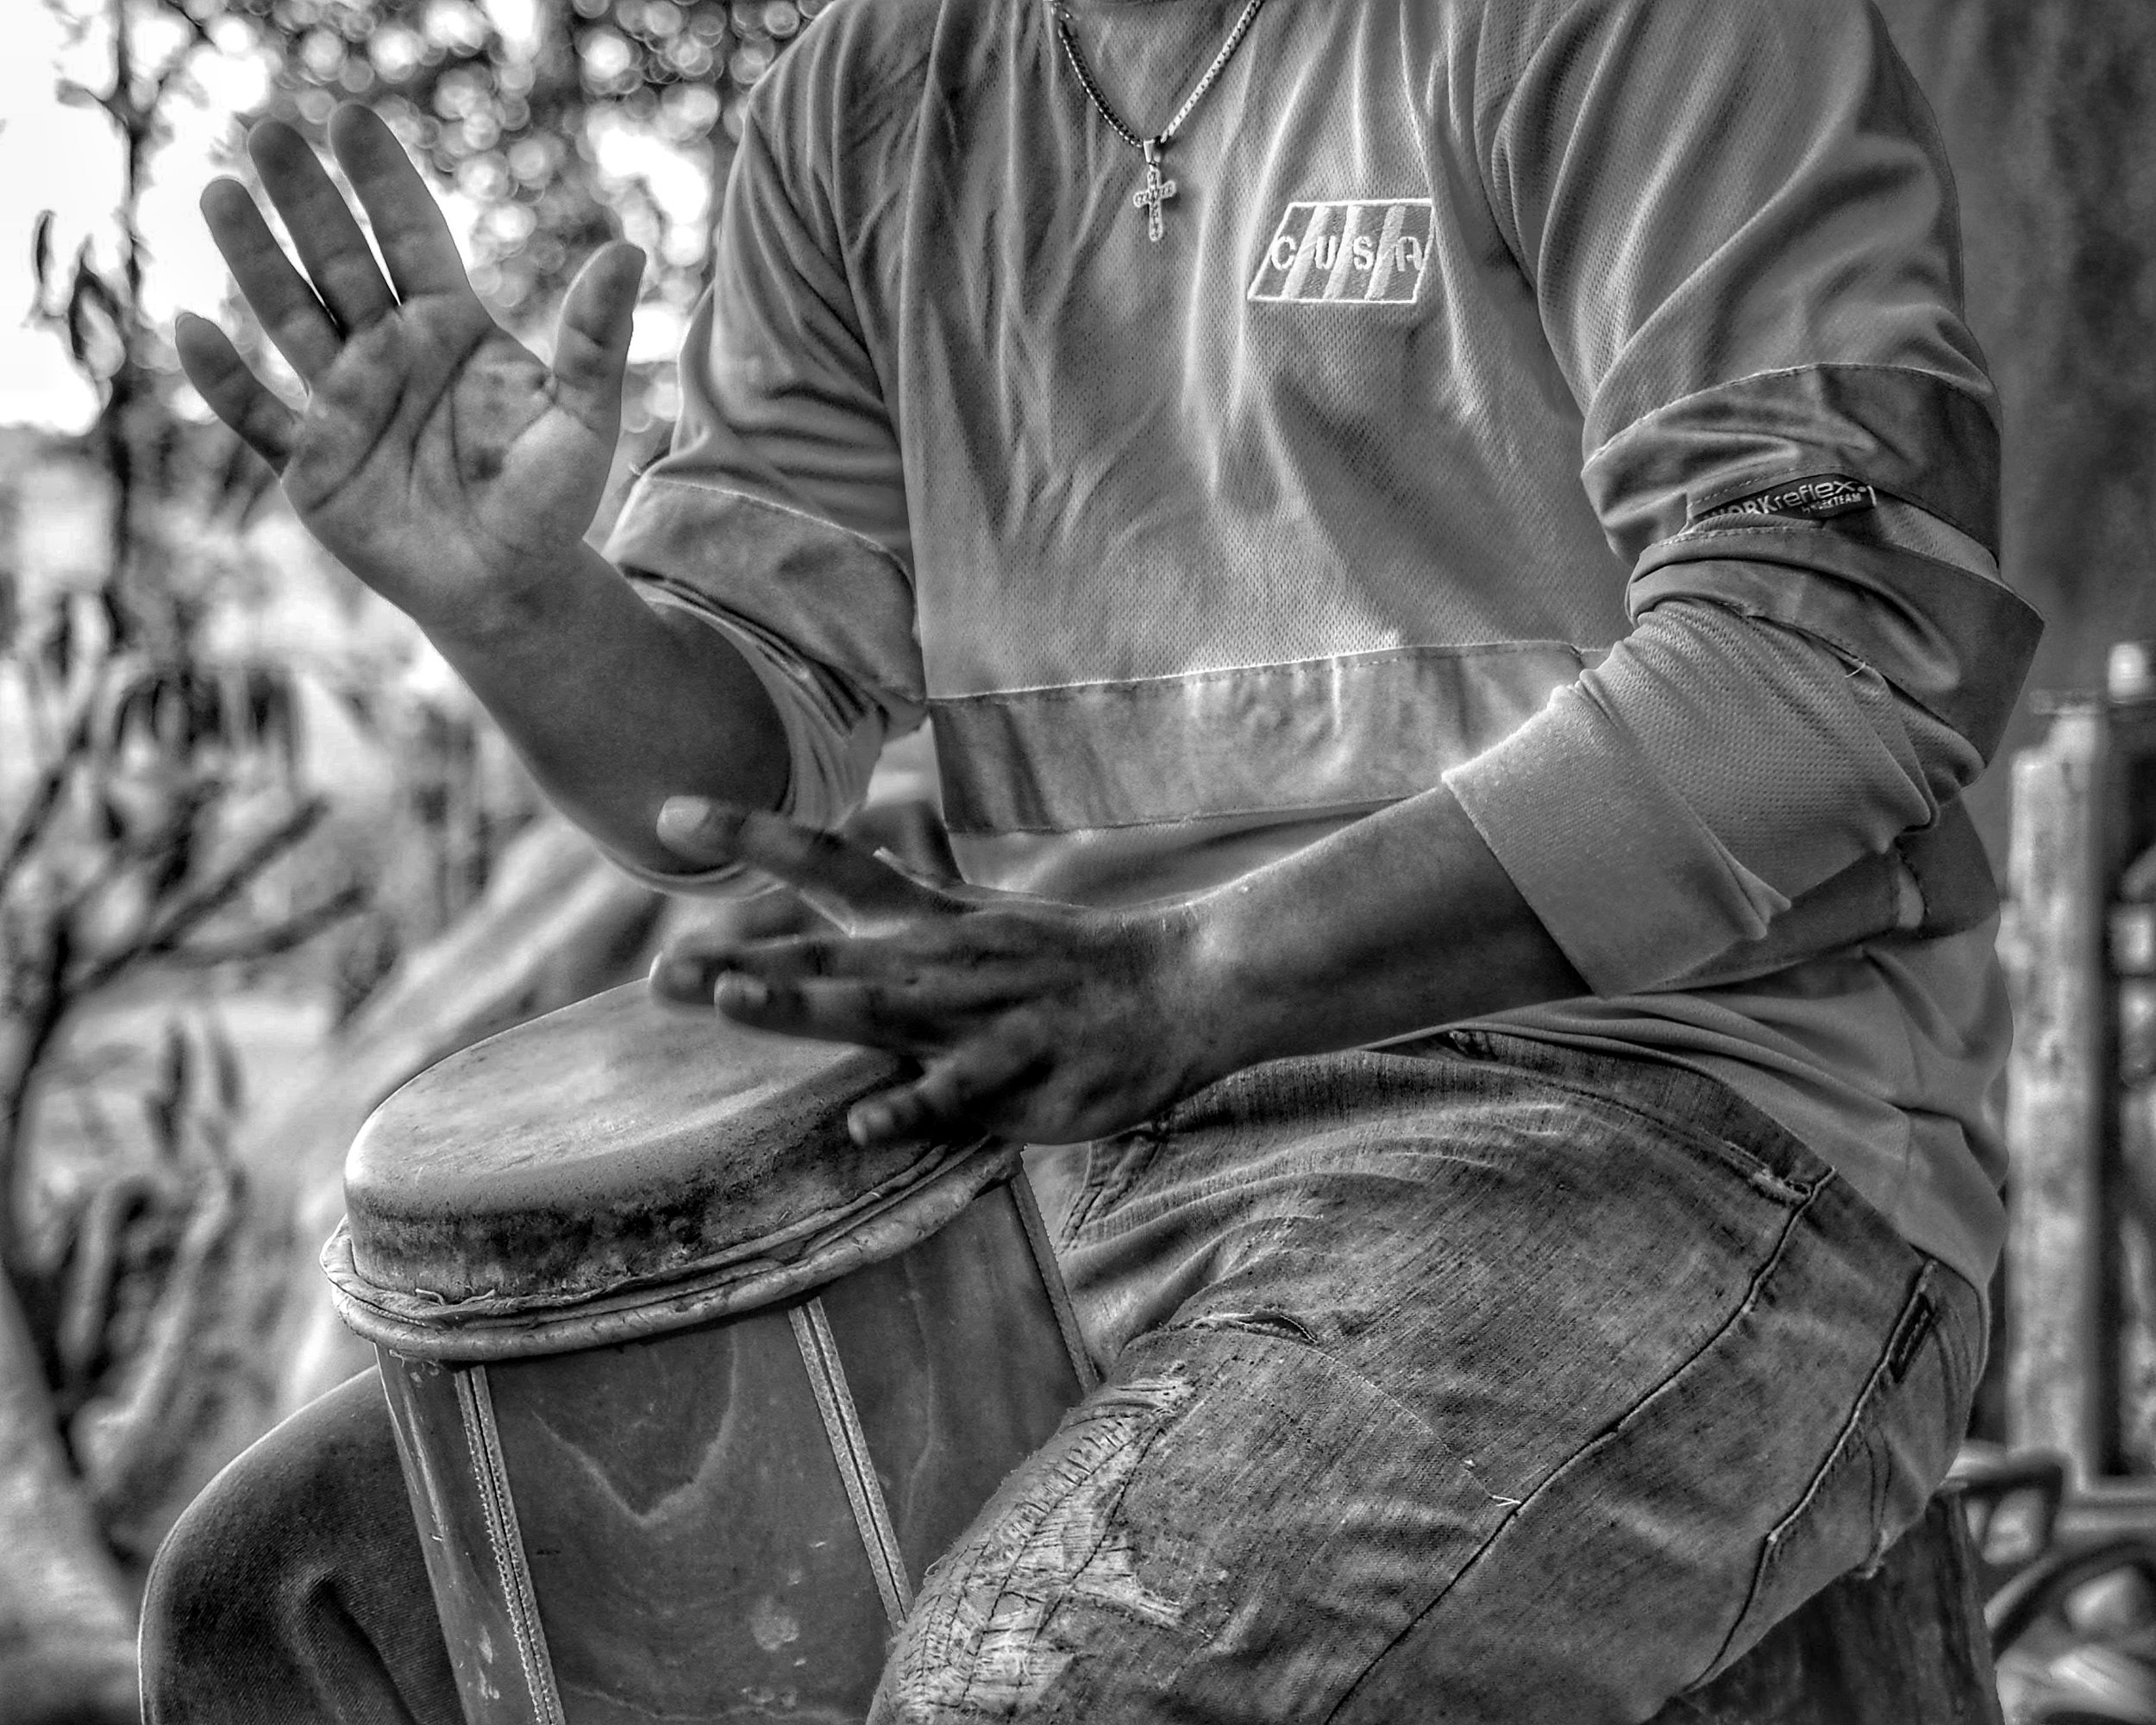 The father makes the drums in Panama and the son wins the competitions.